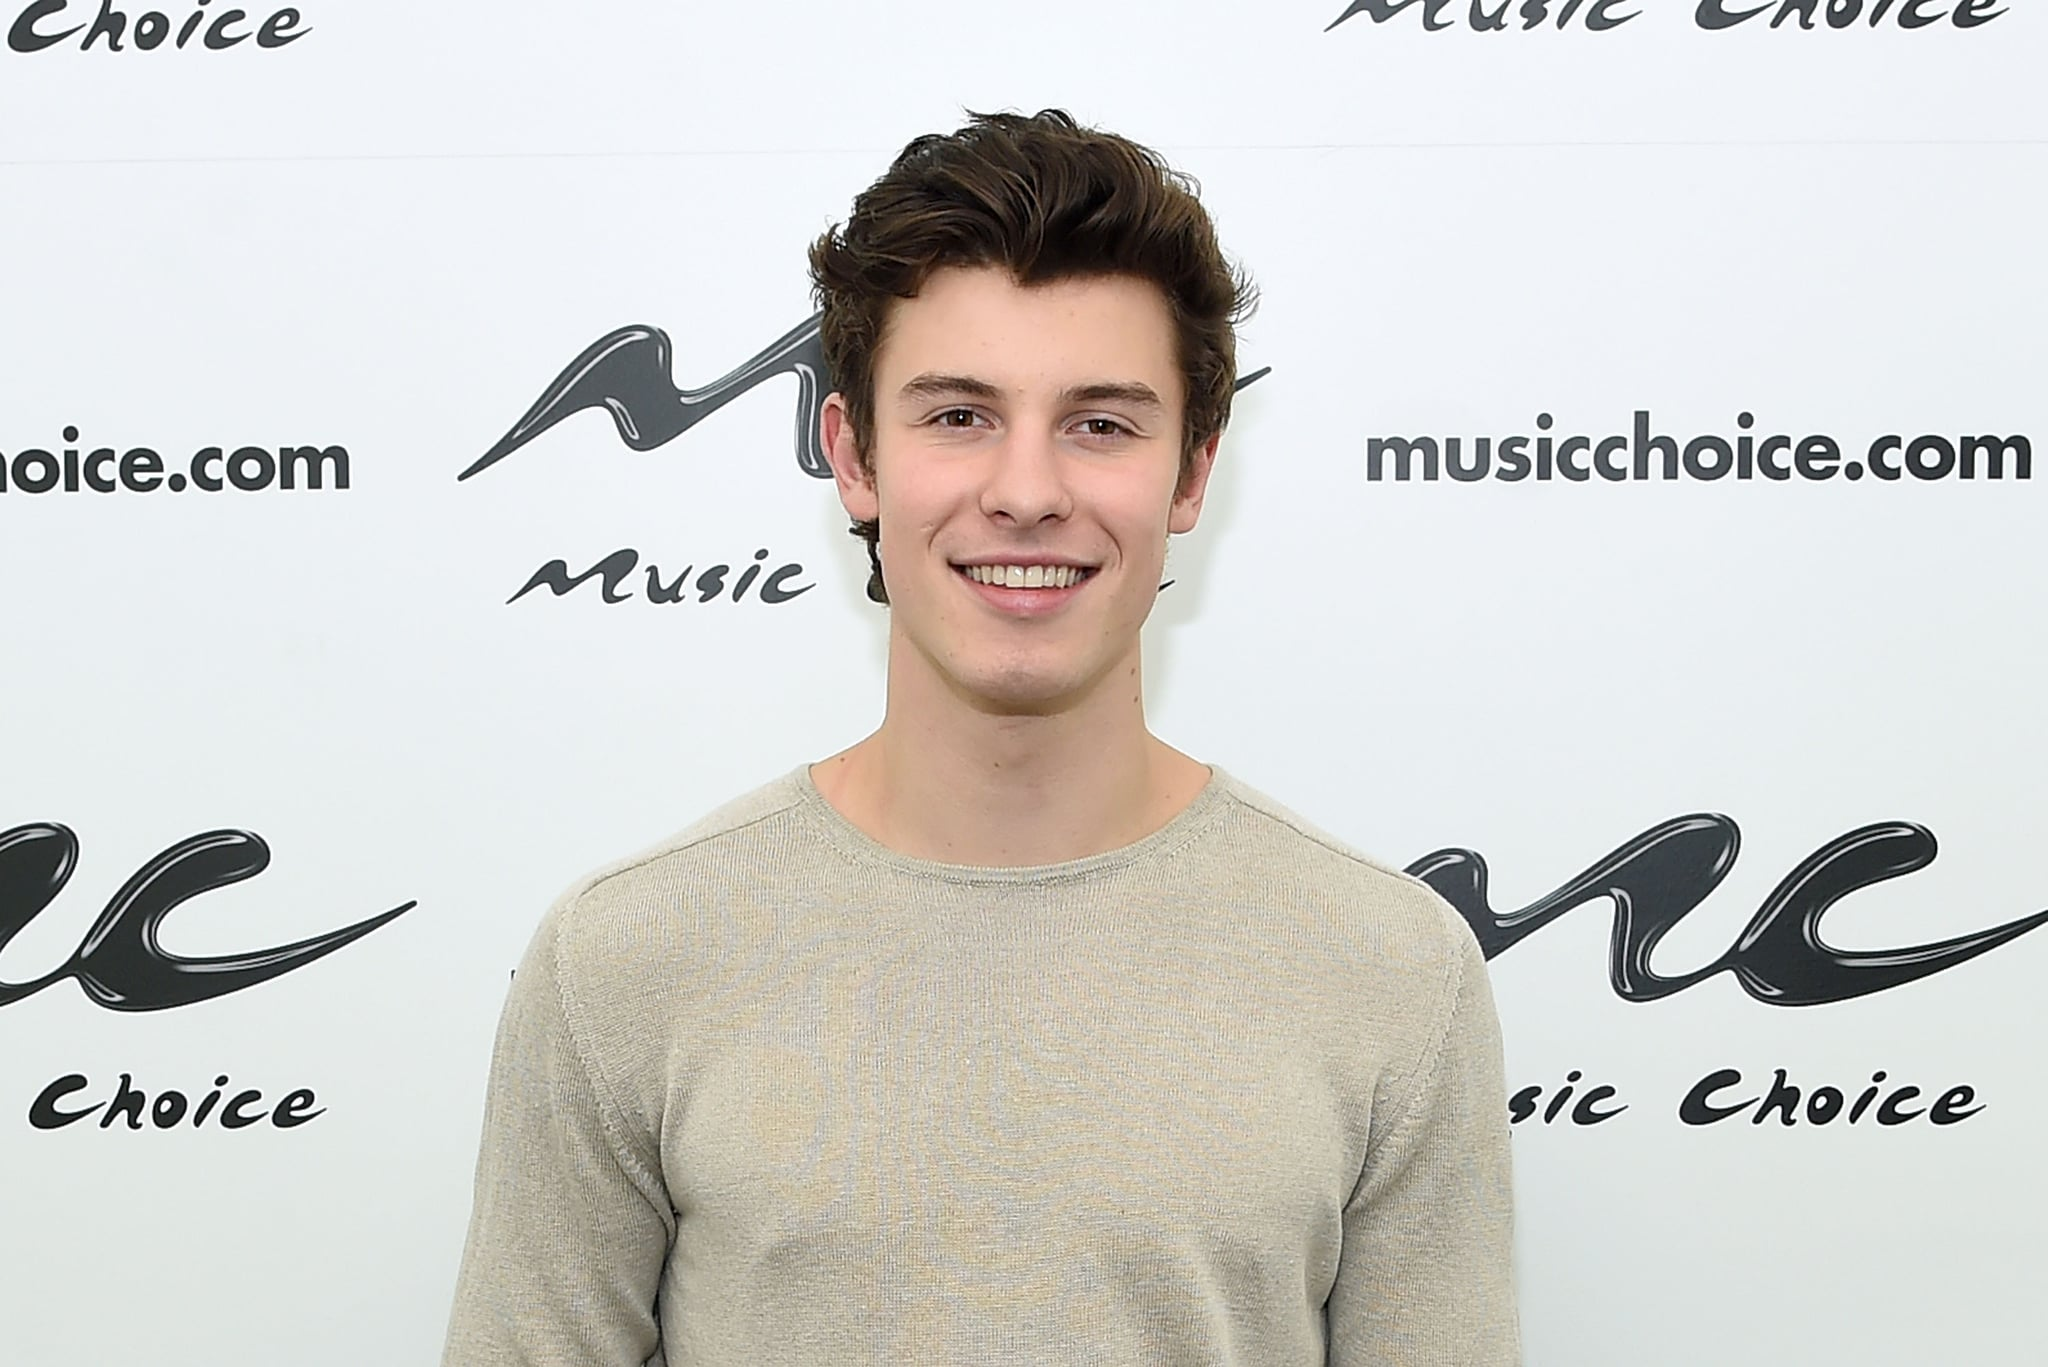 NEW YORK, NY - MARCH 22:  Shawn Mendes visits Music Choice at Music Choice on March 22, 2018 in New York City.  (Photo by Jamie McCarthy/Getty Images)